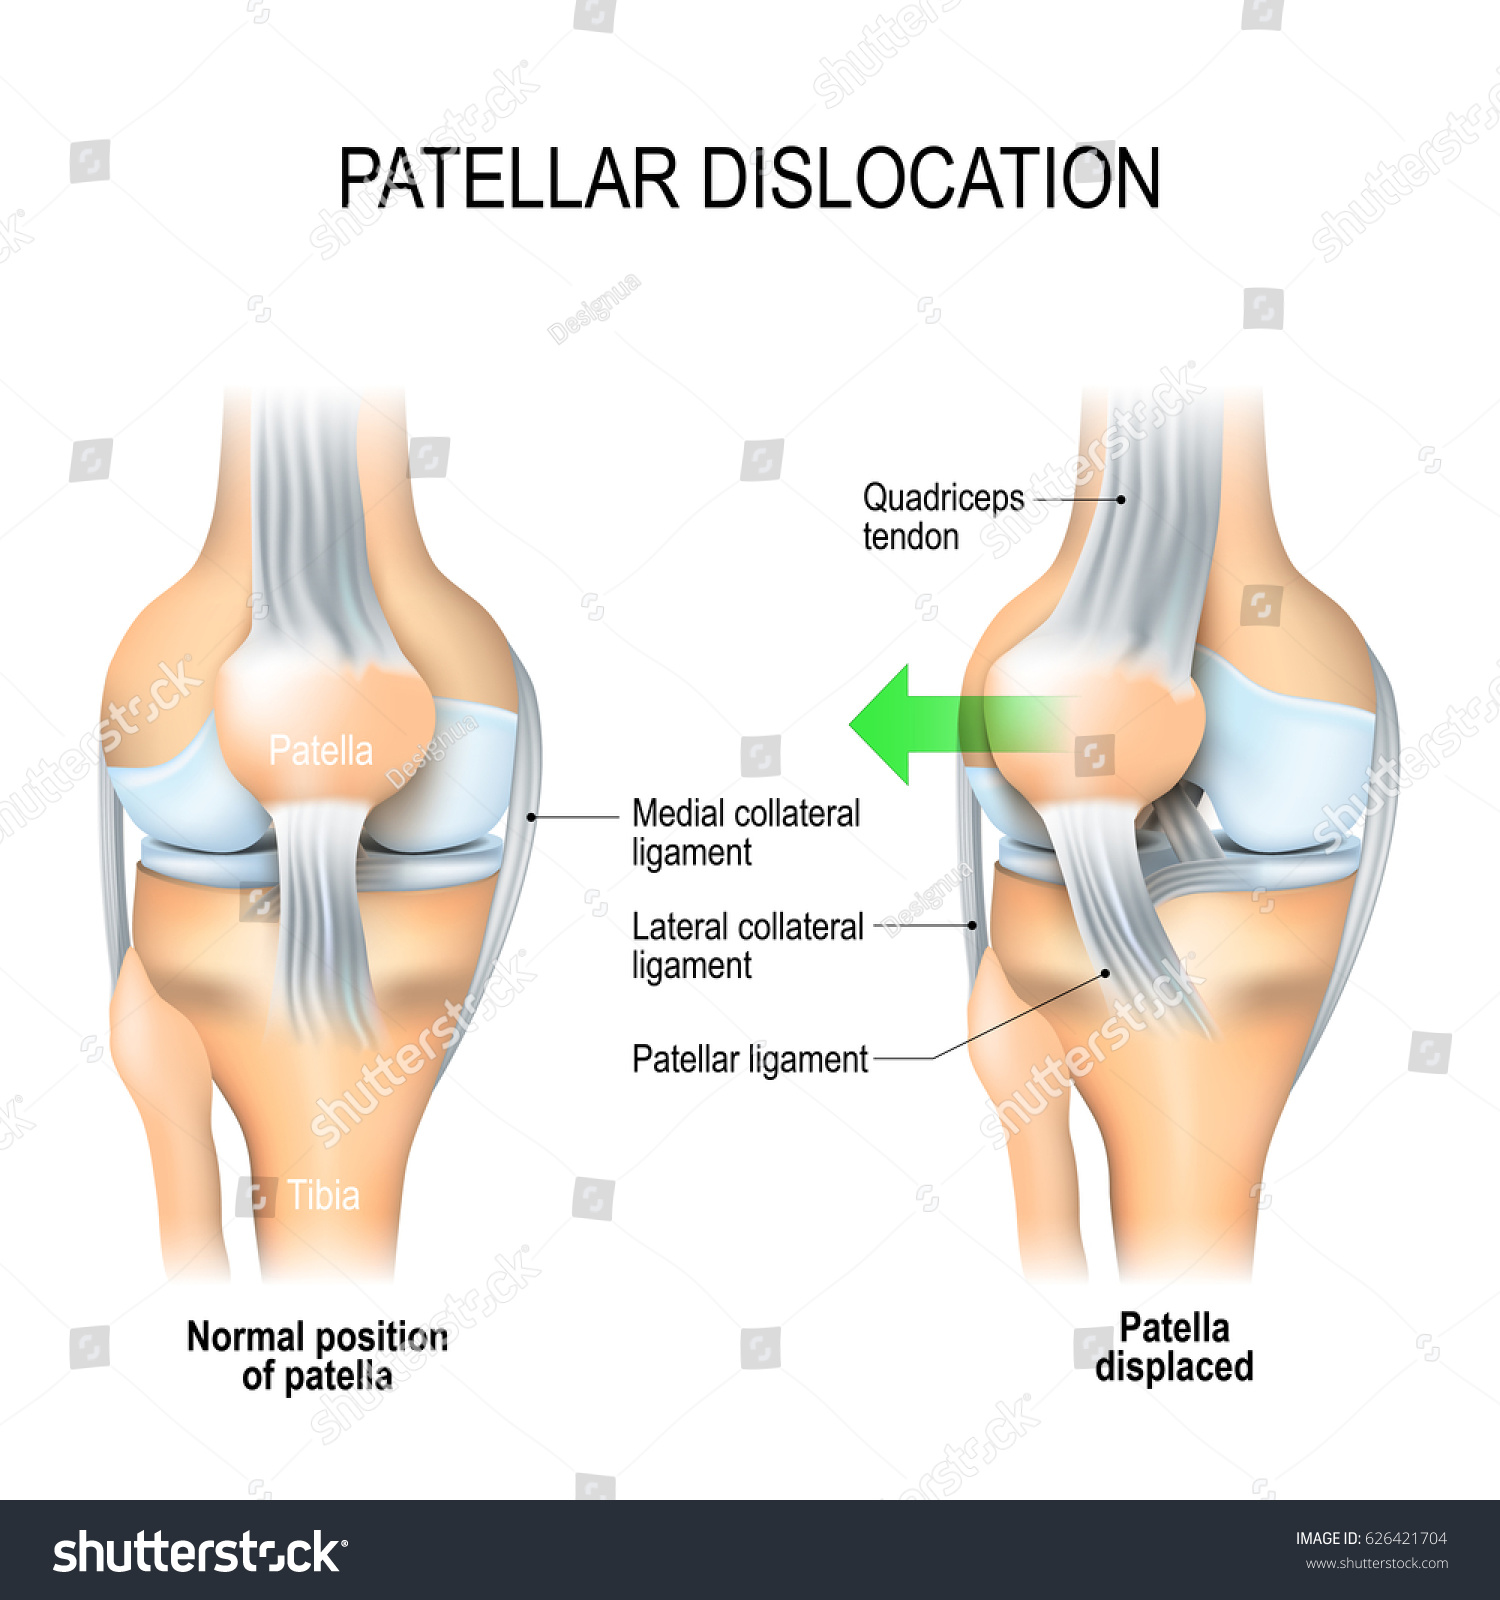 Patellar Dislocation Normal Position Kneecap Patella Stock ...